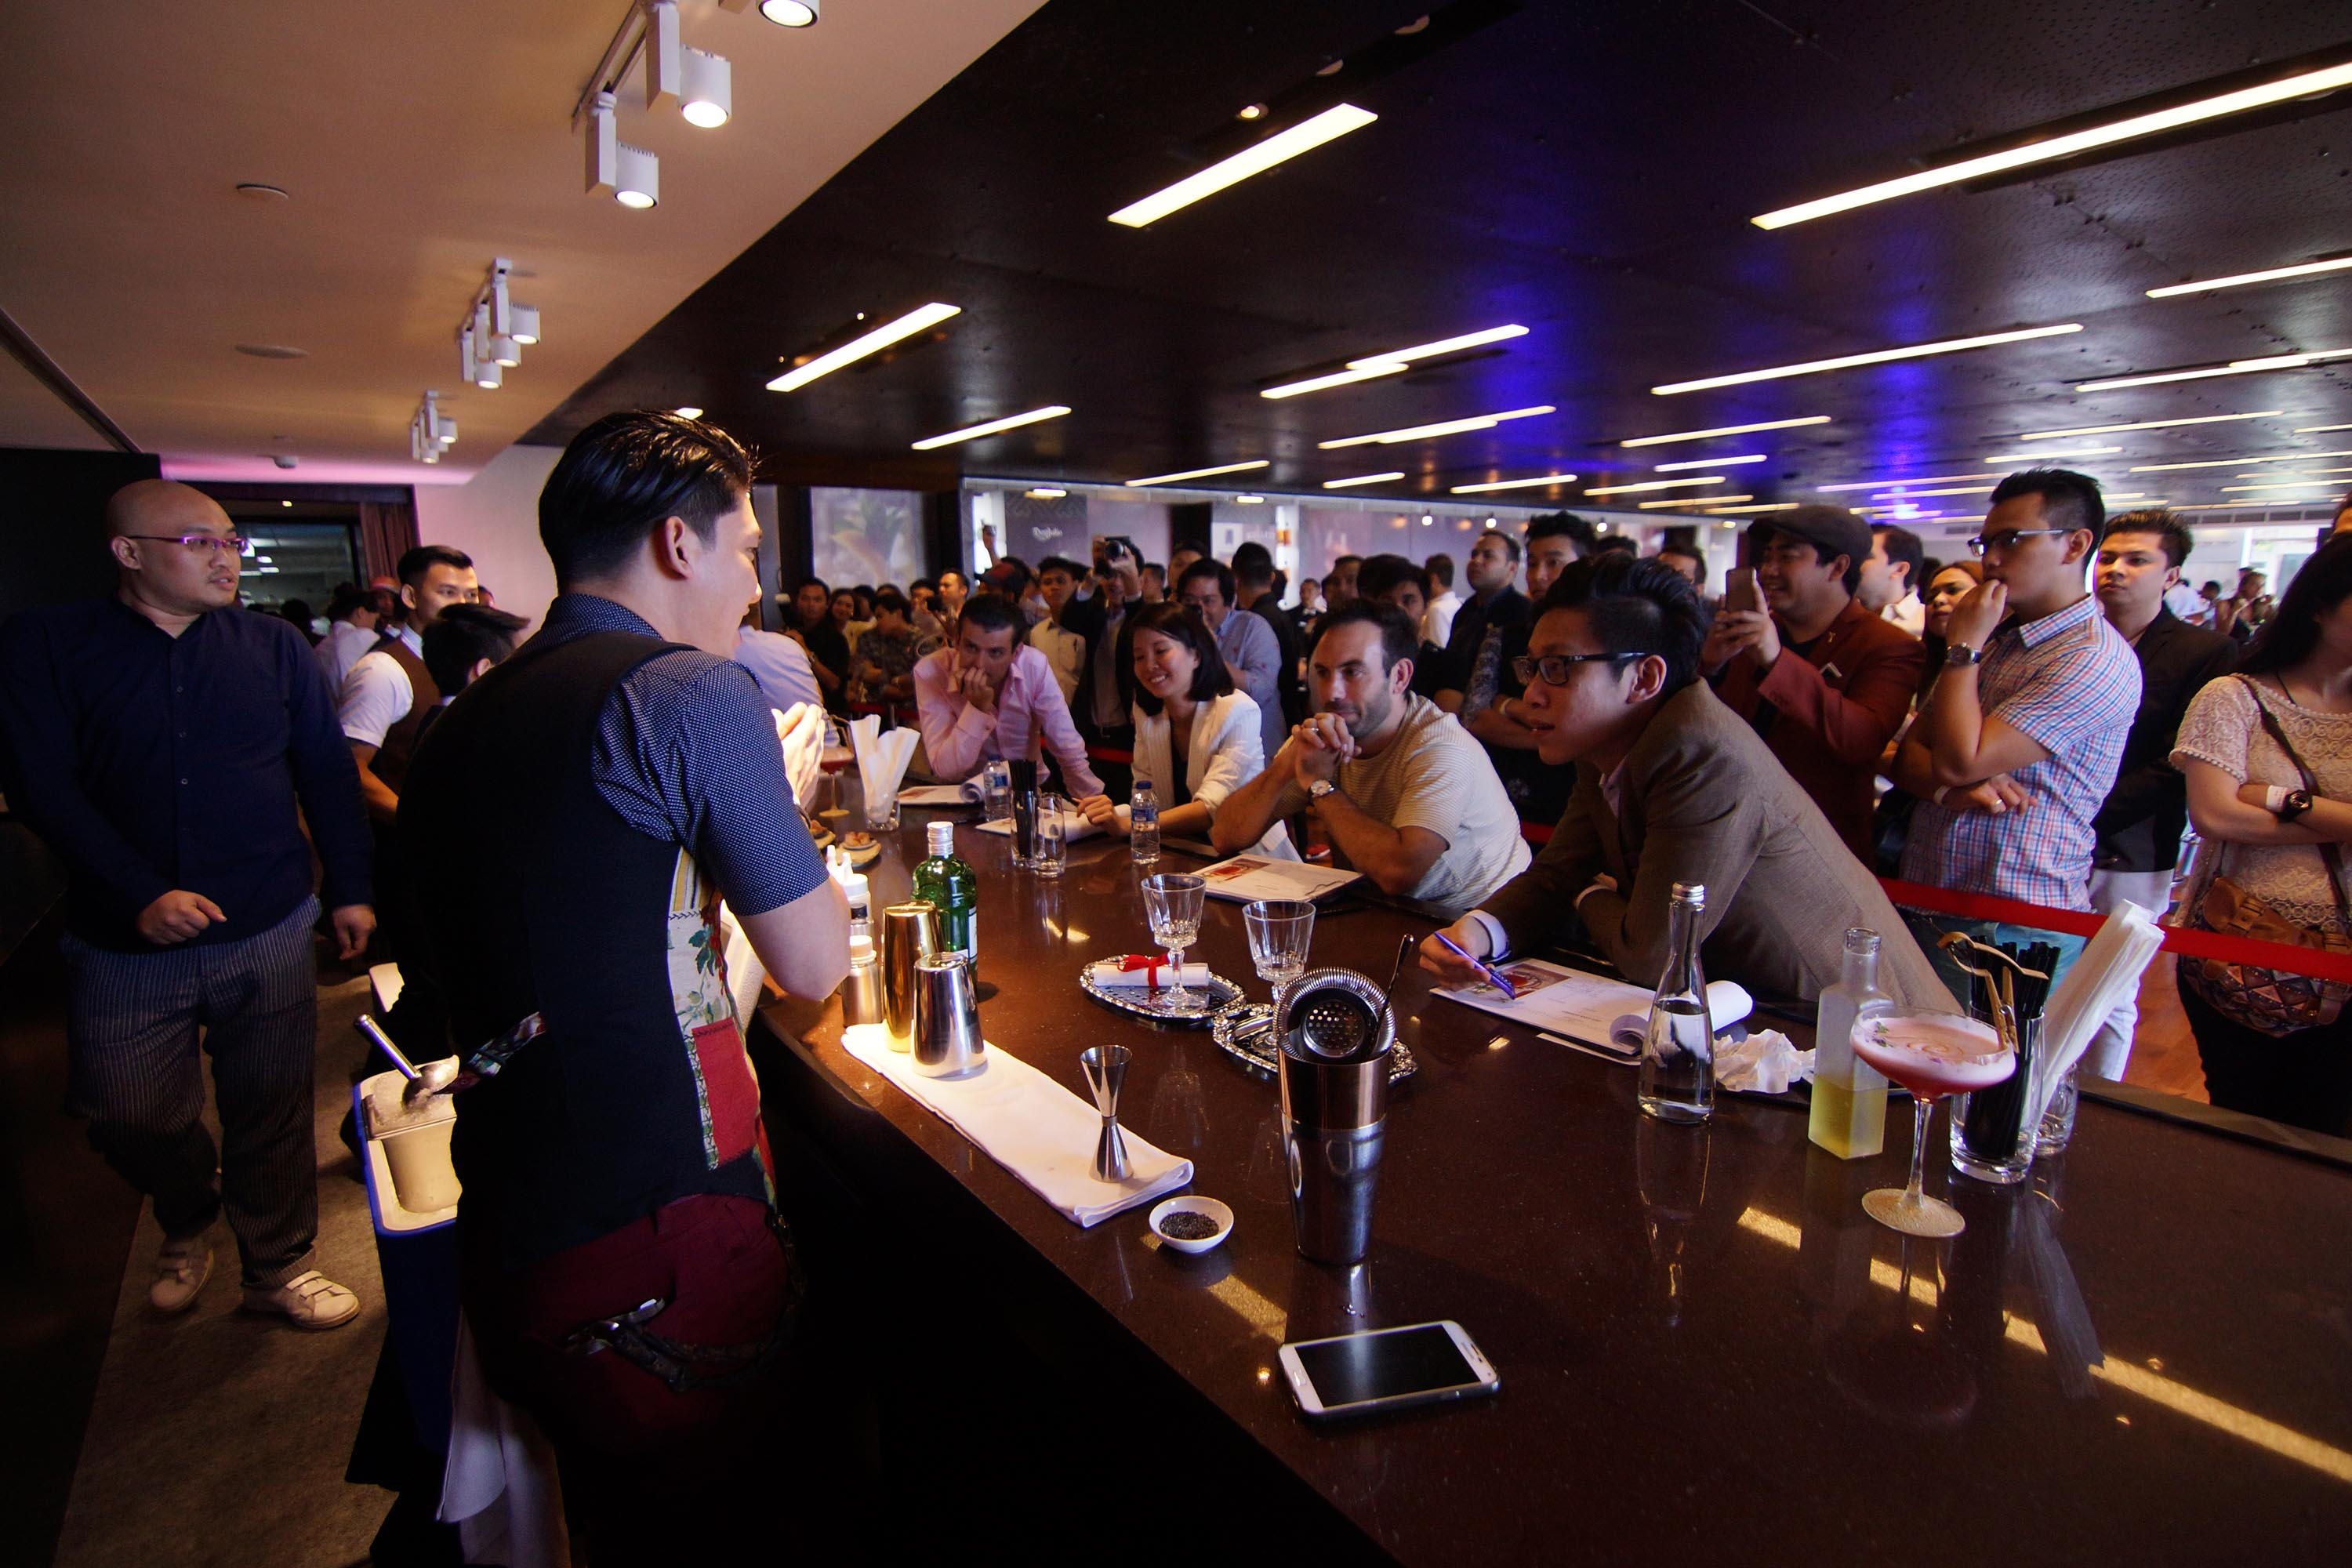 Diageo, the world's premium drinks company, proudly held the highly anticipated South East Asia World Class Finals 2016 in Alila Seminyak Bali